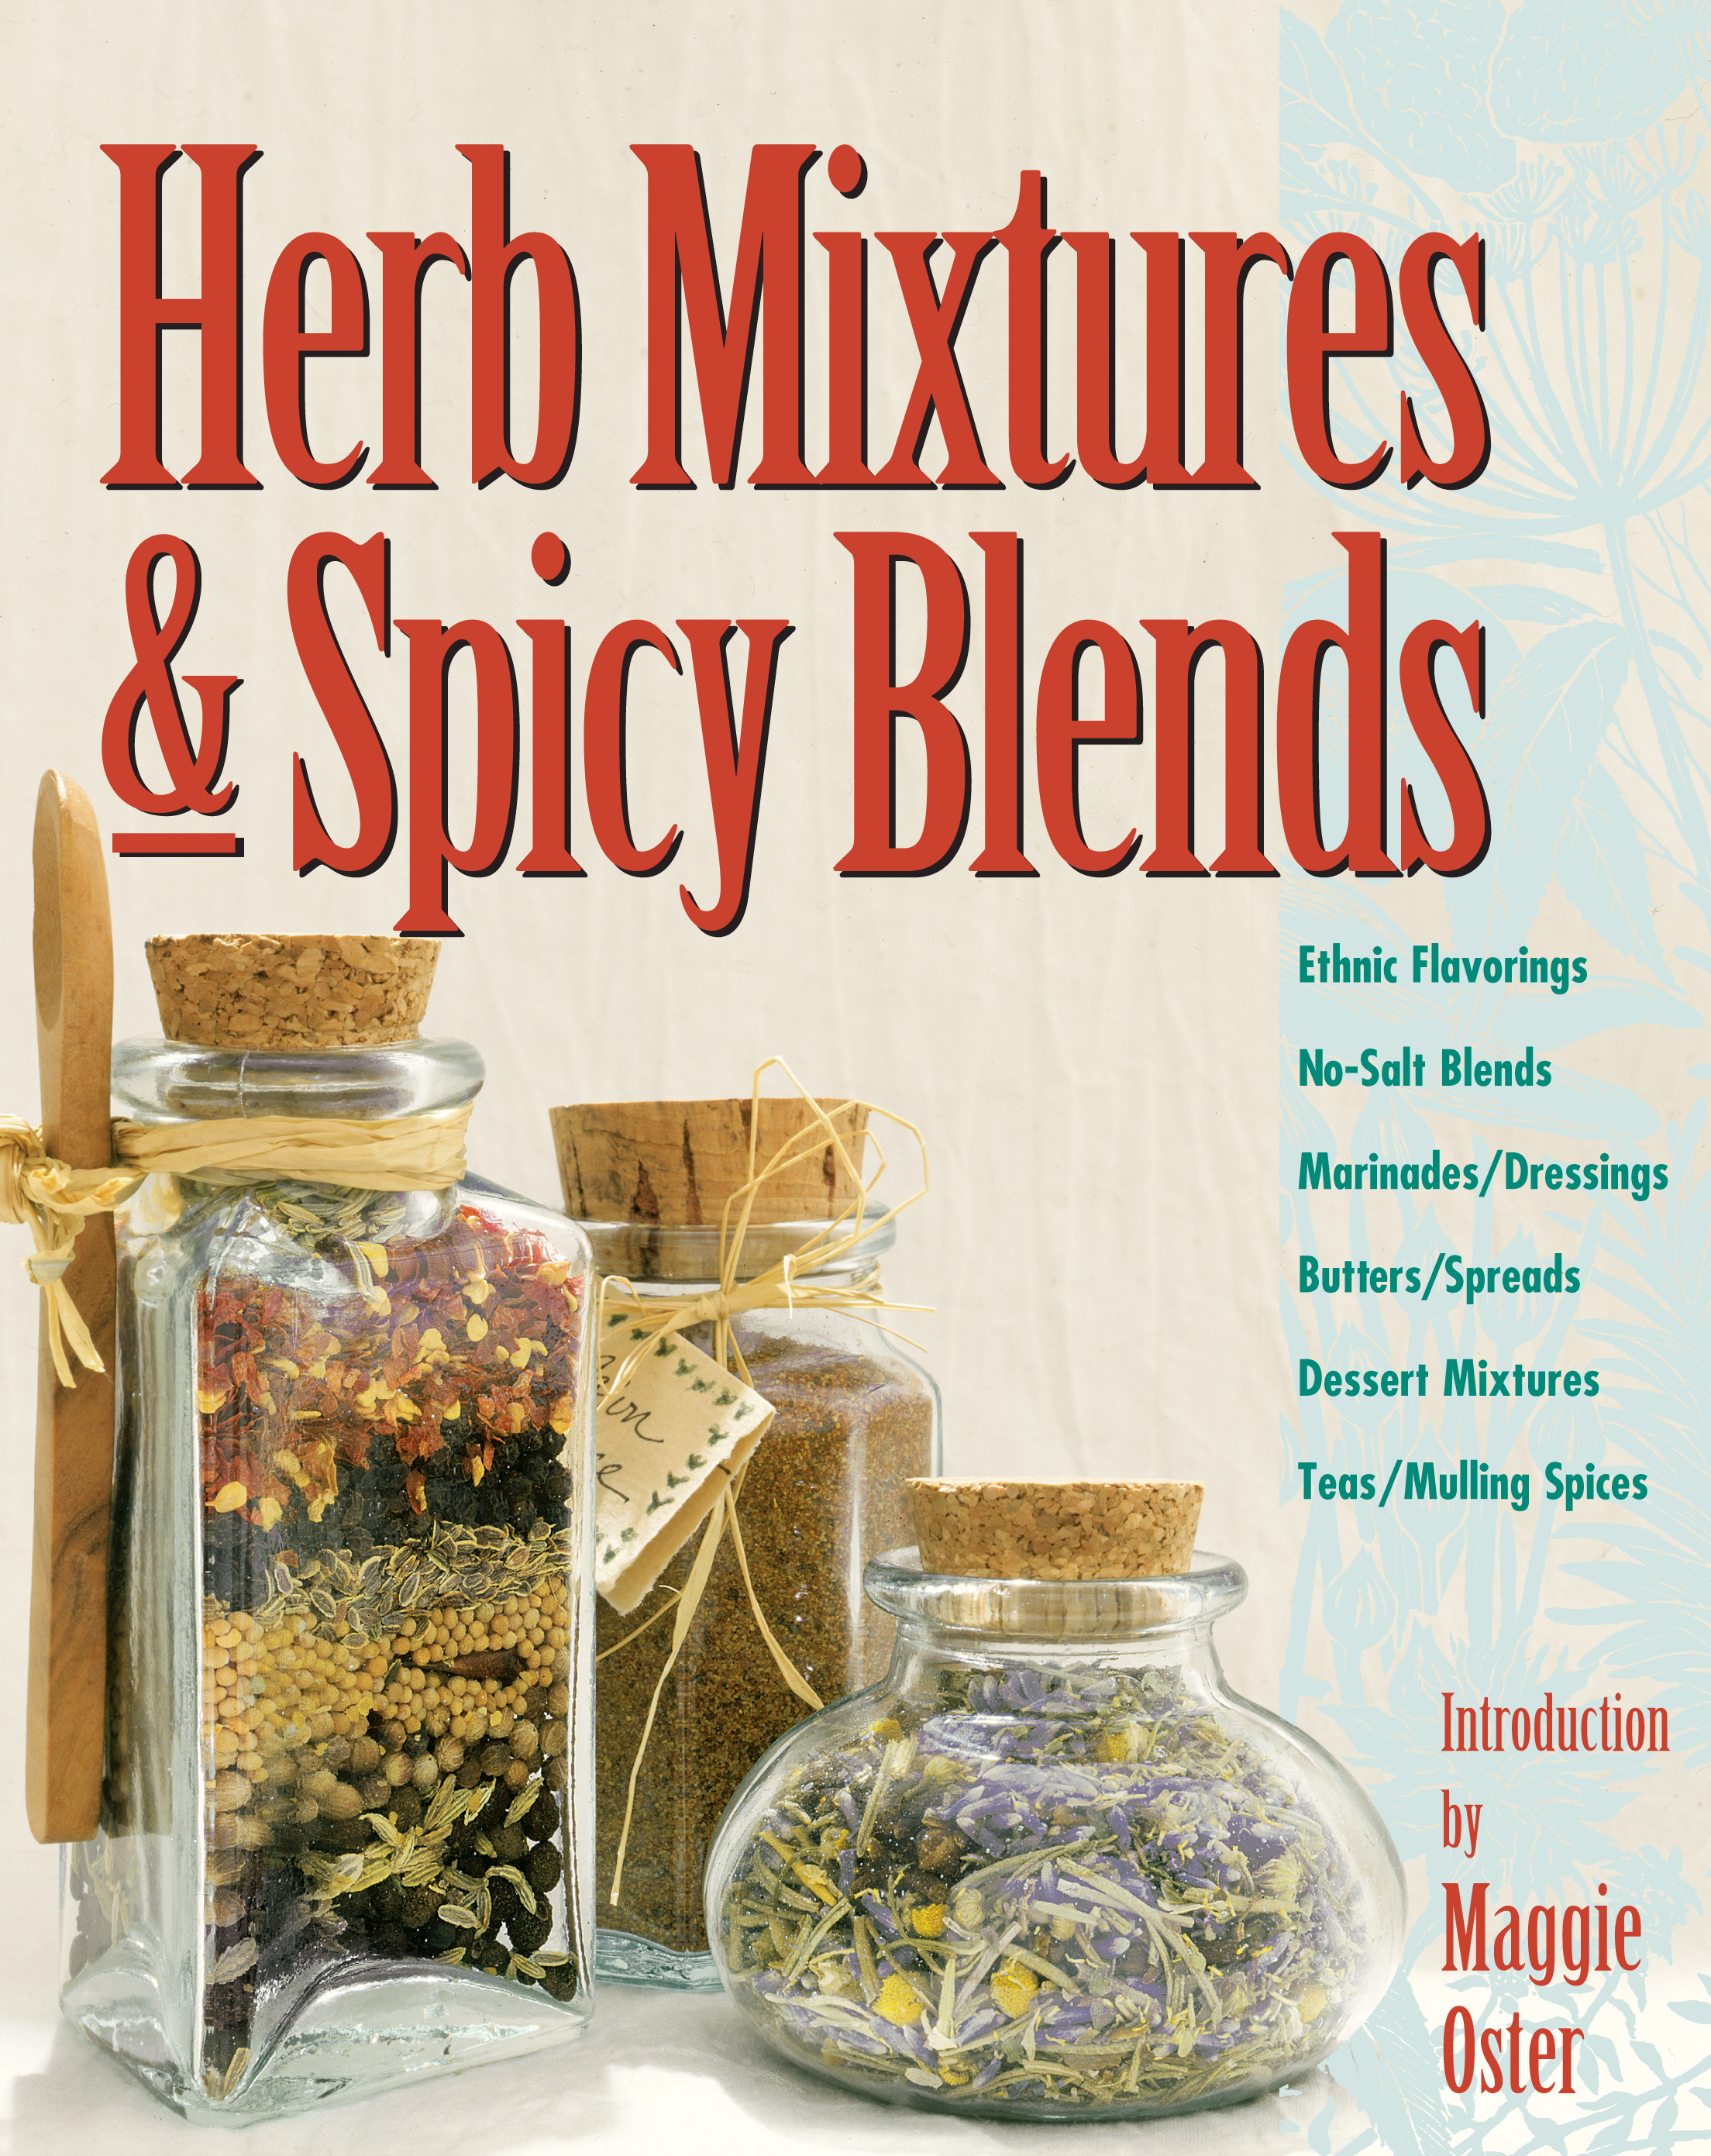 Herb Mixtures & Spicy Blends Ethnic Flavorings, No-Salt Blends, Marinades/Dressings, Butters/Spreads, Dessert Mixtures, Teas/Mulling Spices - Maggie Oster